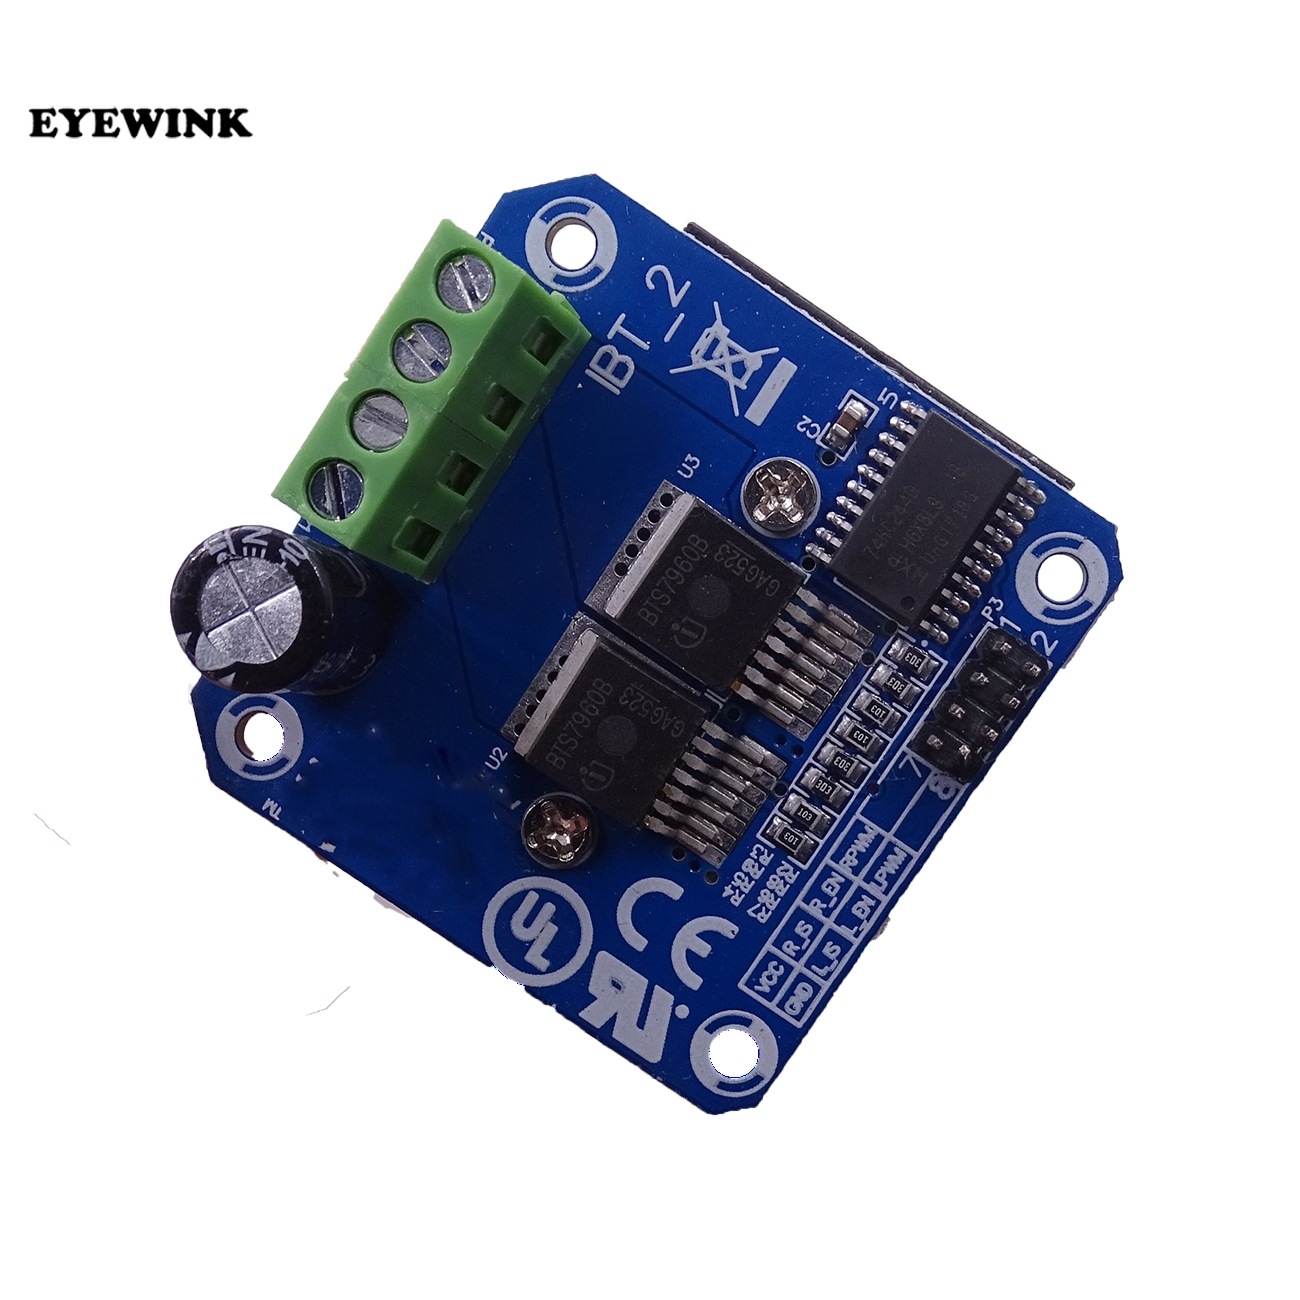 10PCS BTS7960 43A H bridge High power Motor Driver module diy smart car Current diagnostic